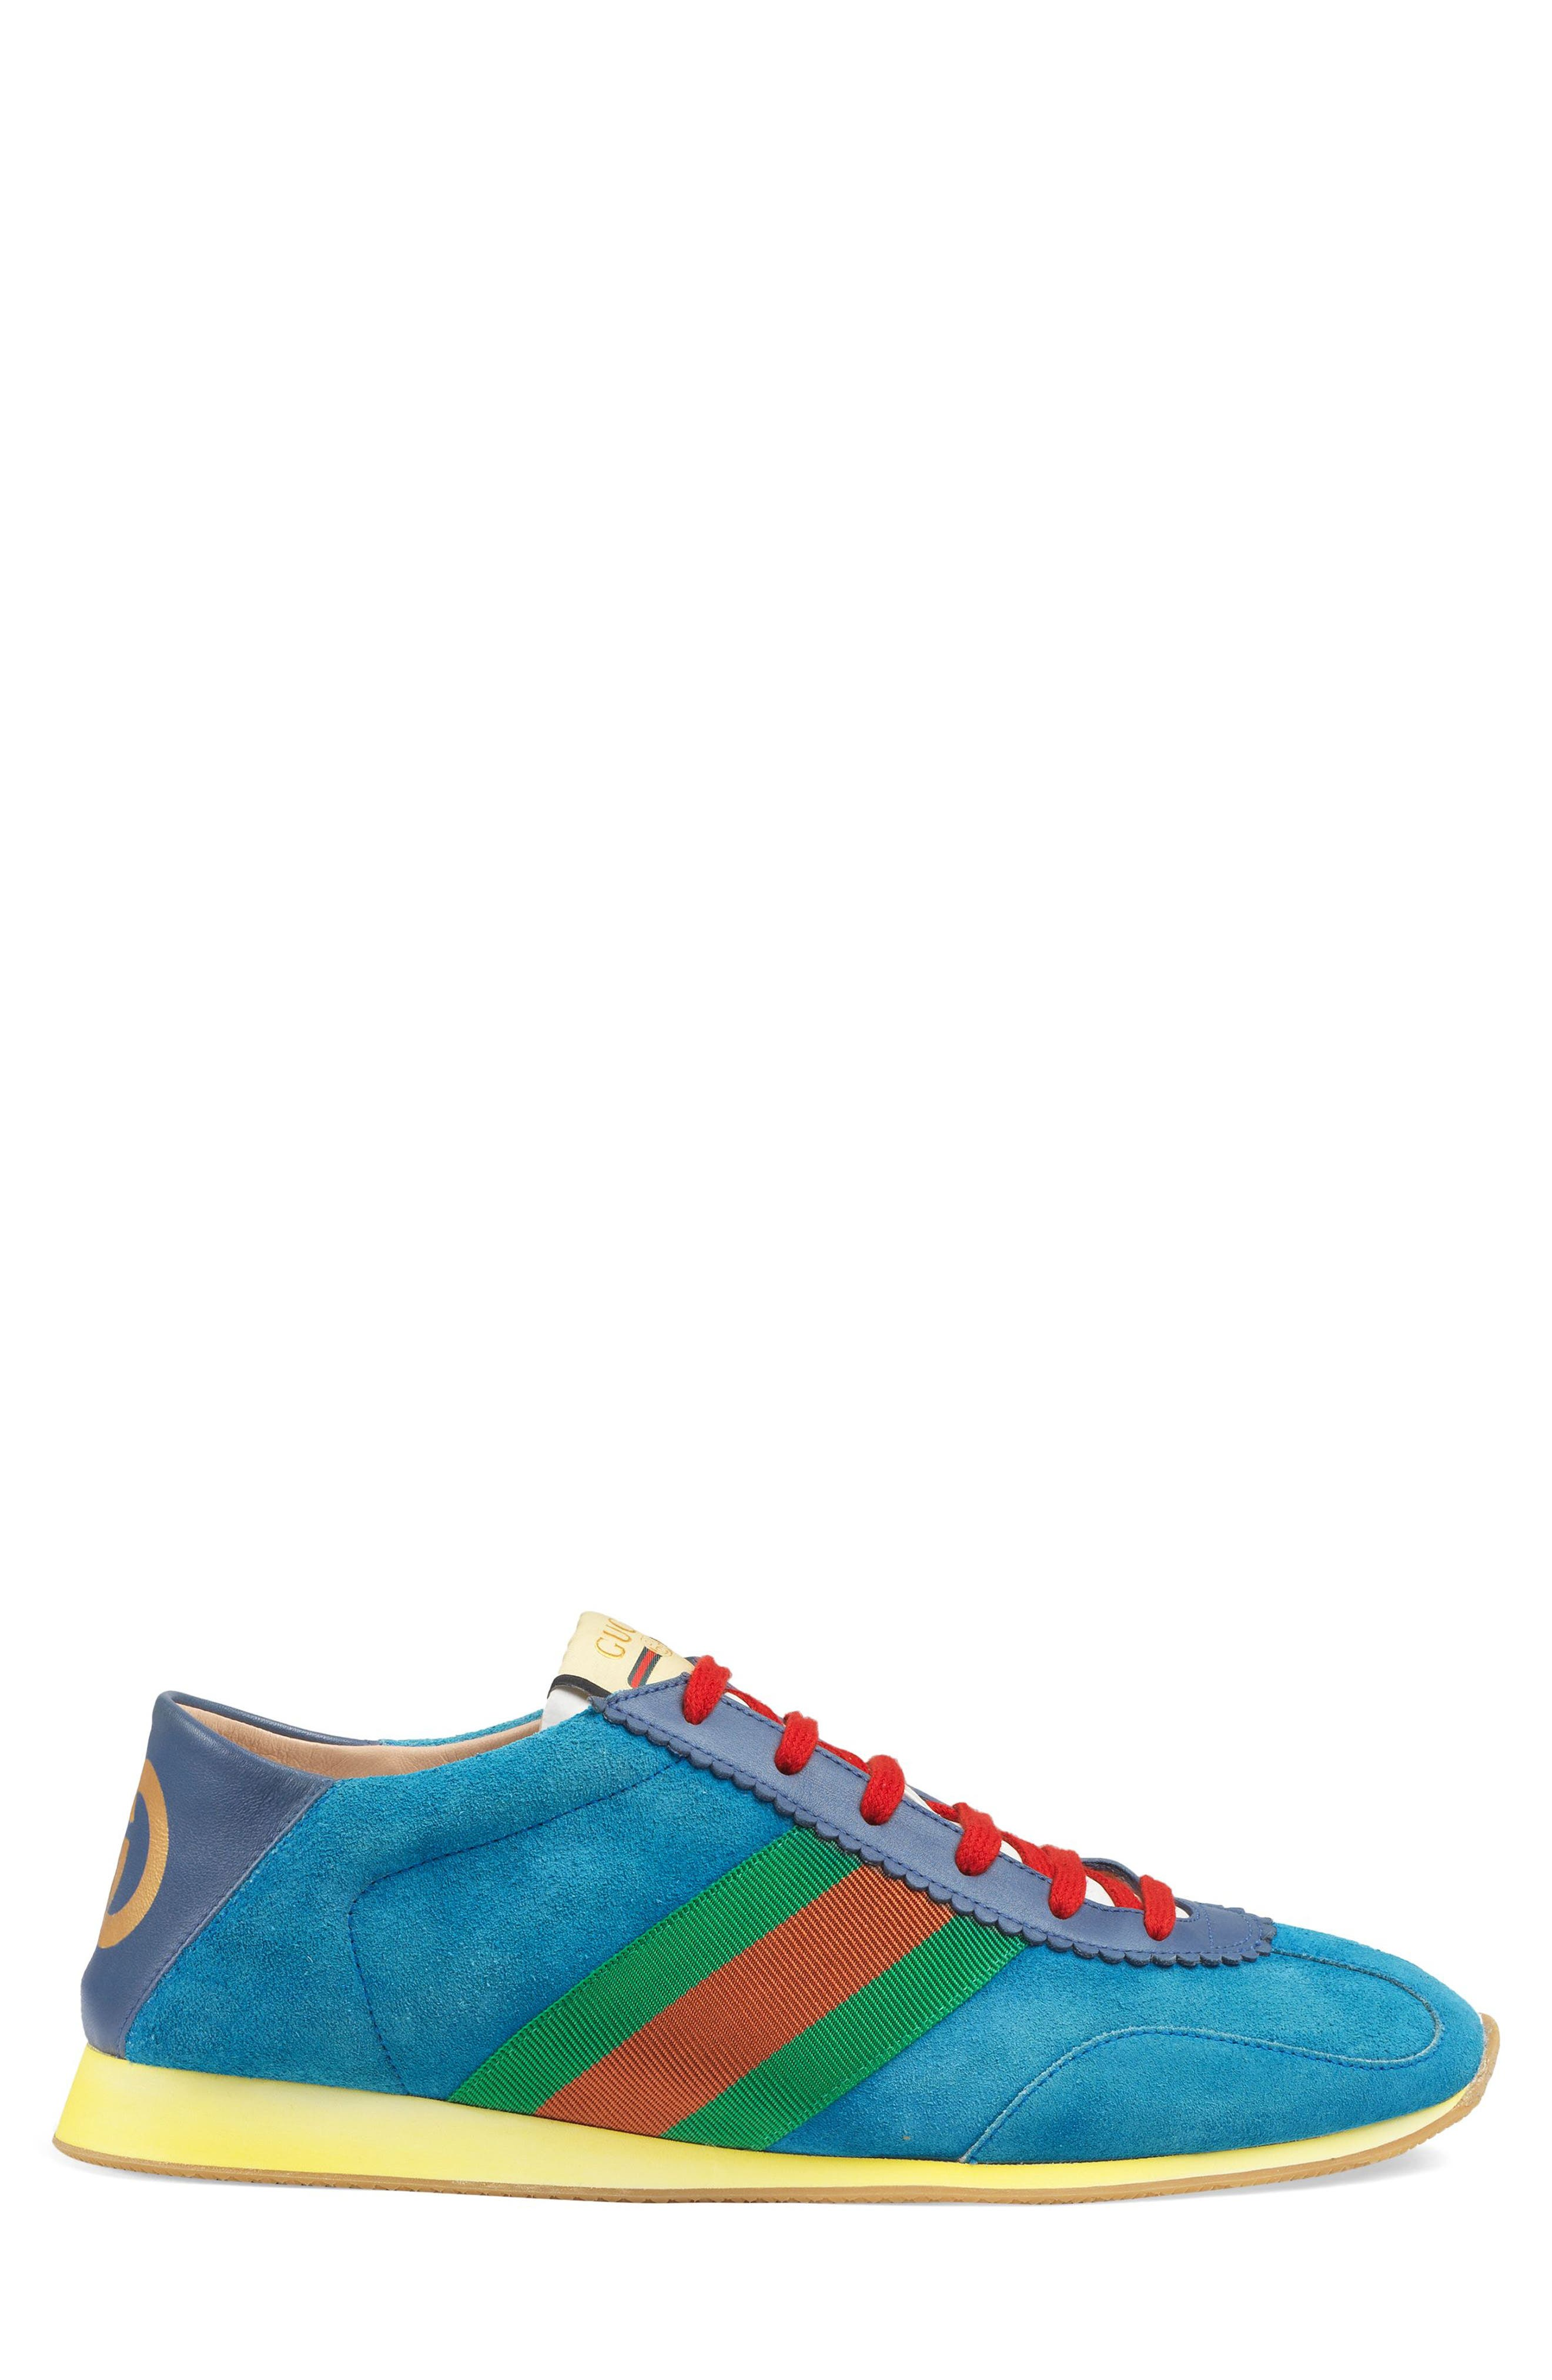 Rocket Collapsible Sneaker,                             Alternate thumbnail 2, color,                             BLUE/ INK